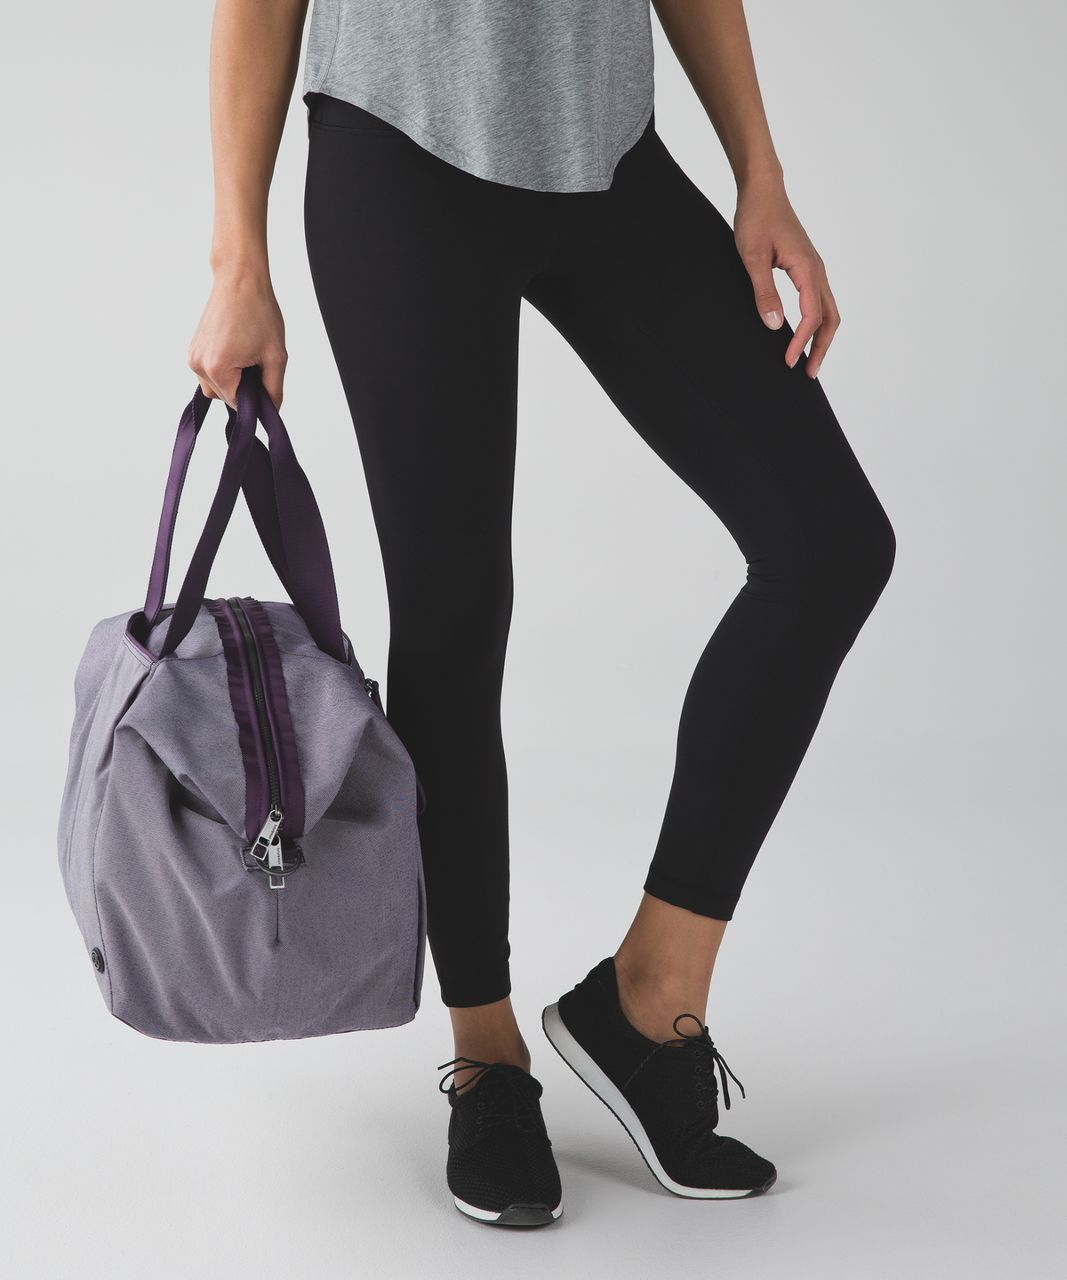 Lululemon Break Free Weekender - Deep Zinfandel / White / Deep Zinfandel